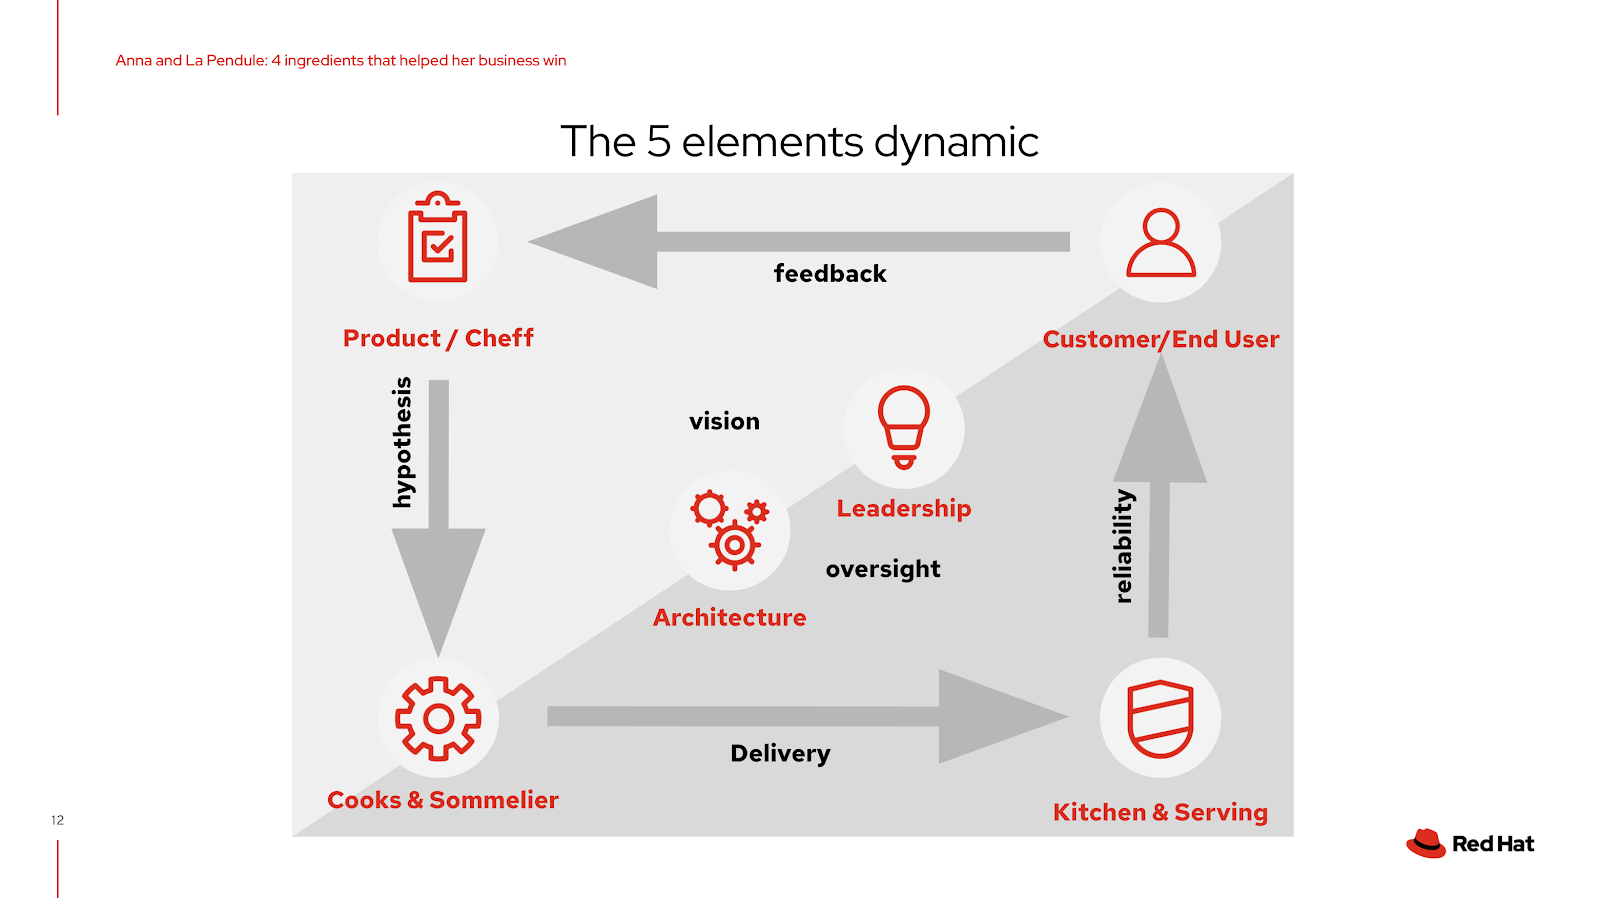 The 5 elements dynamic, an example